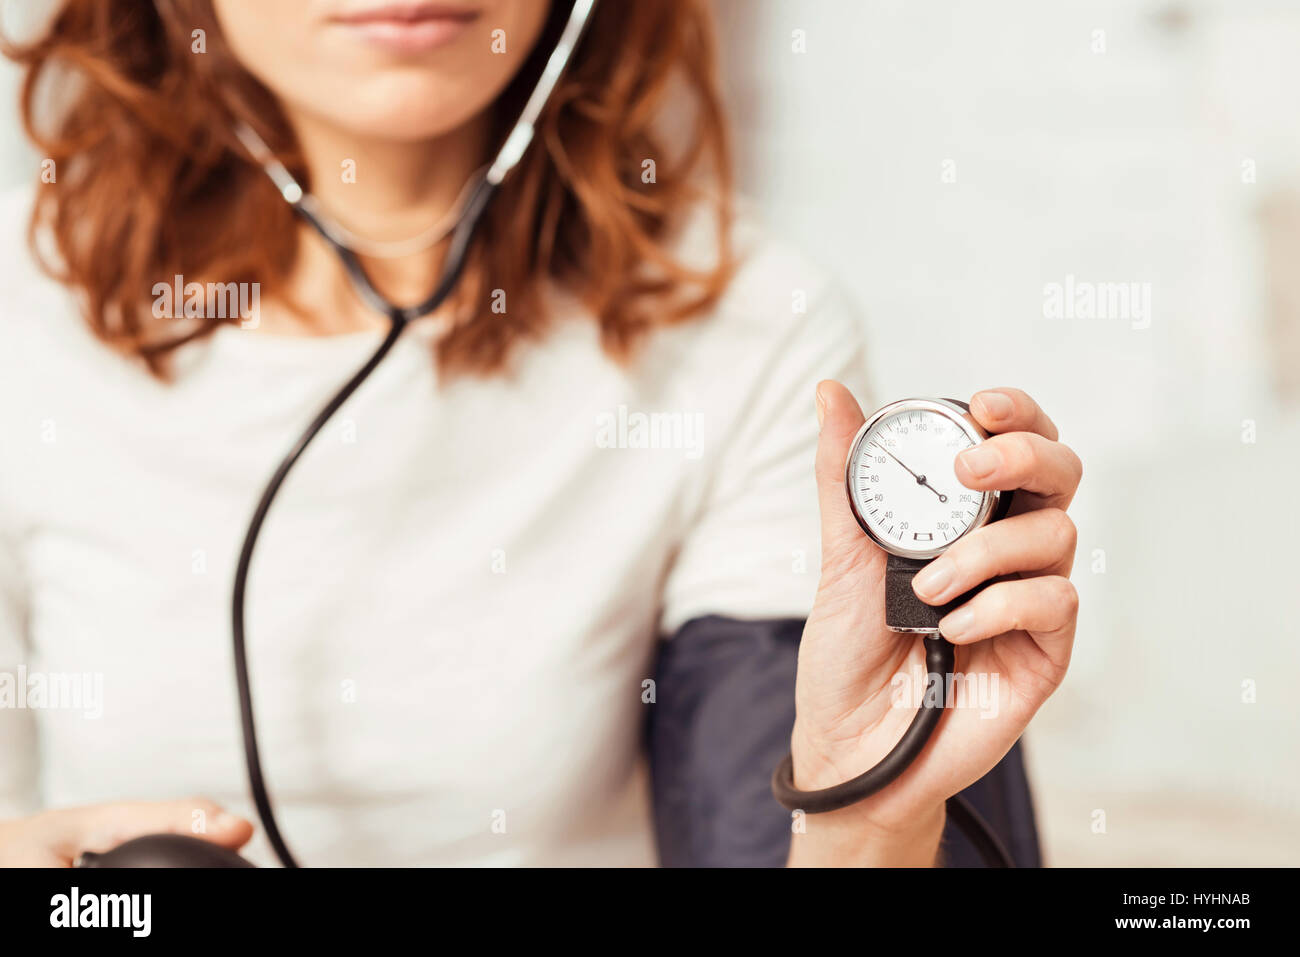 Concentrated young woman demonstrating blood pressure index at home - Stock Image